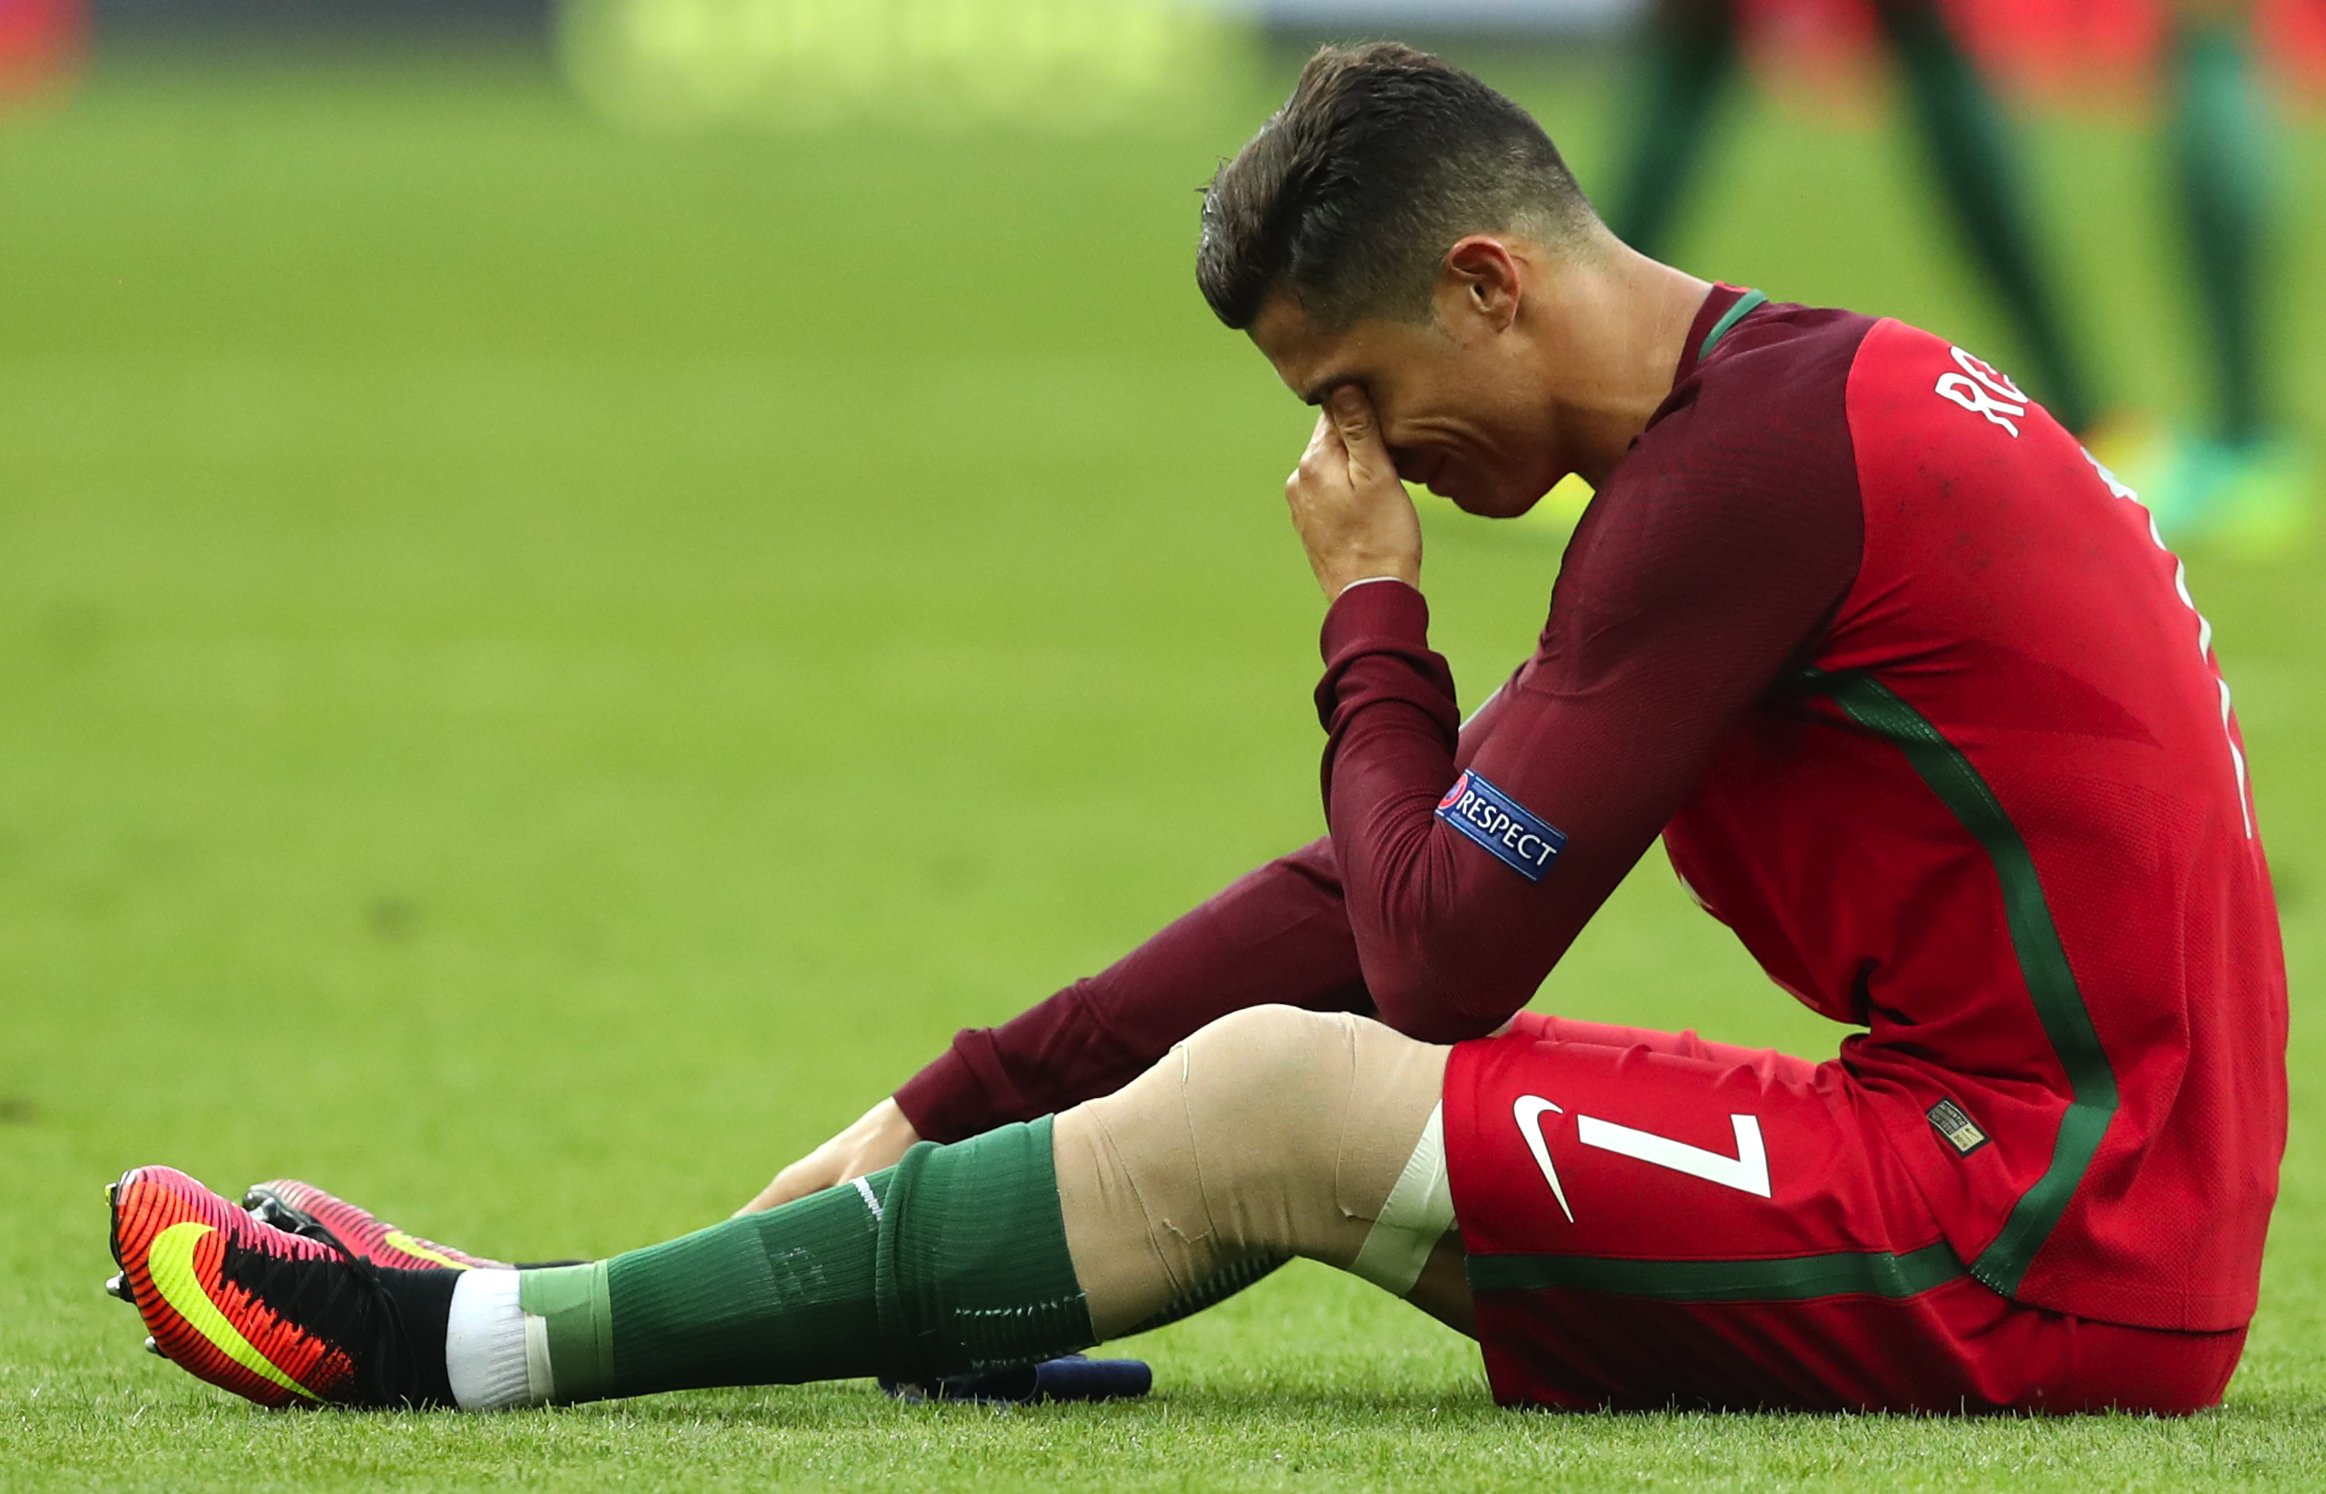 Portugal's Cristiano Ronaldo cries on the pitch during the Euro 2016 final soccer match between Portugal and France at the Stade de France in Saint-Denis, north of Paris, Sunday, July 10, 2016. (AP Photo/Thanassis Stavrakis)